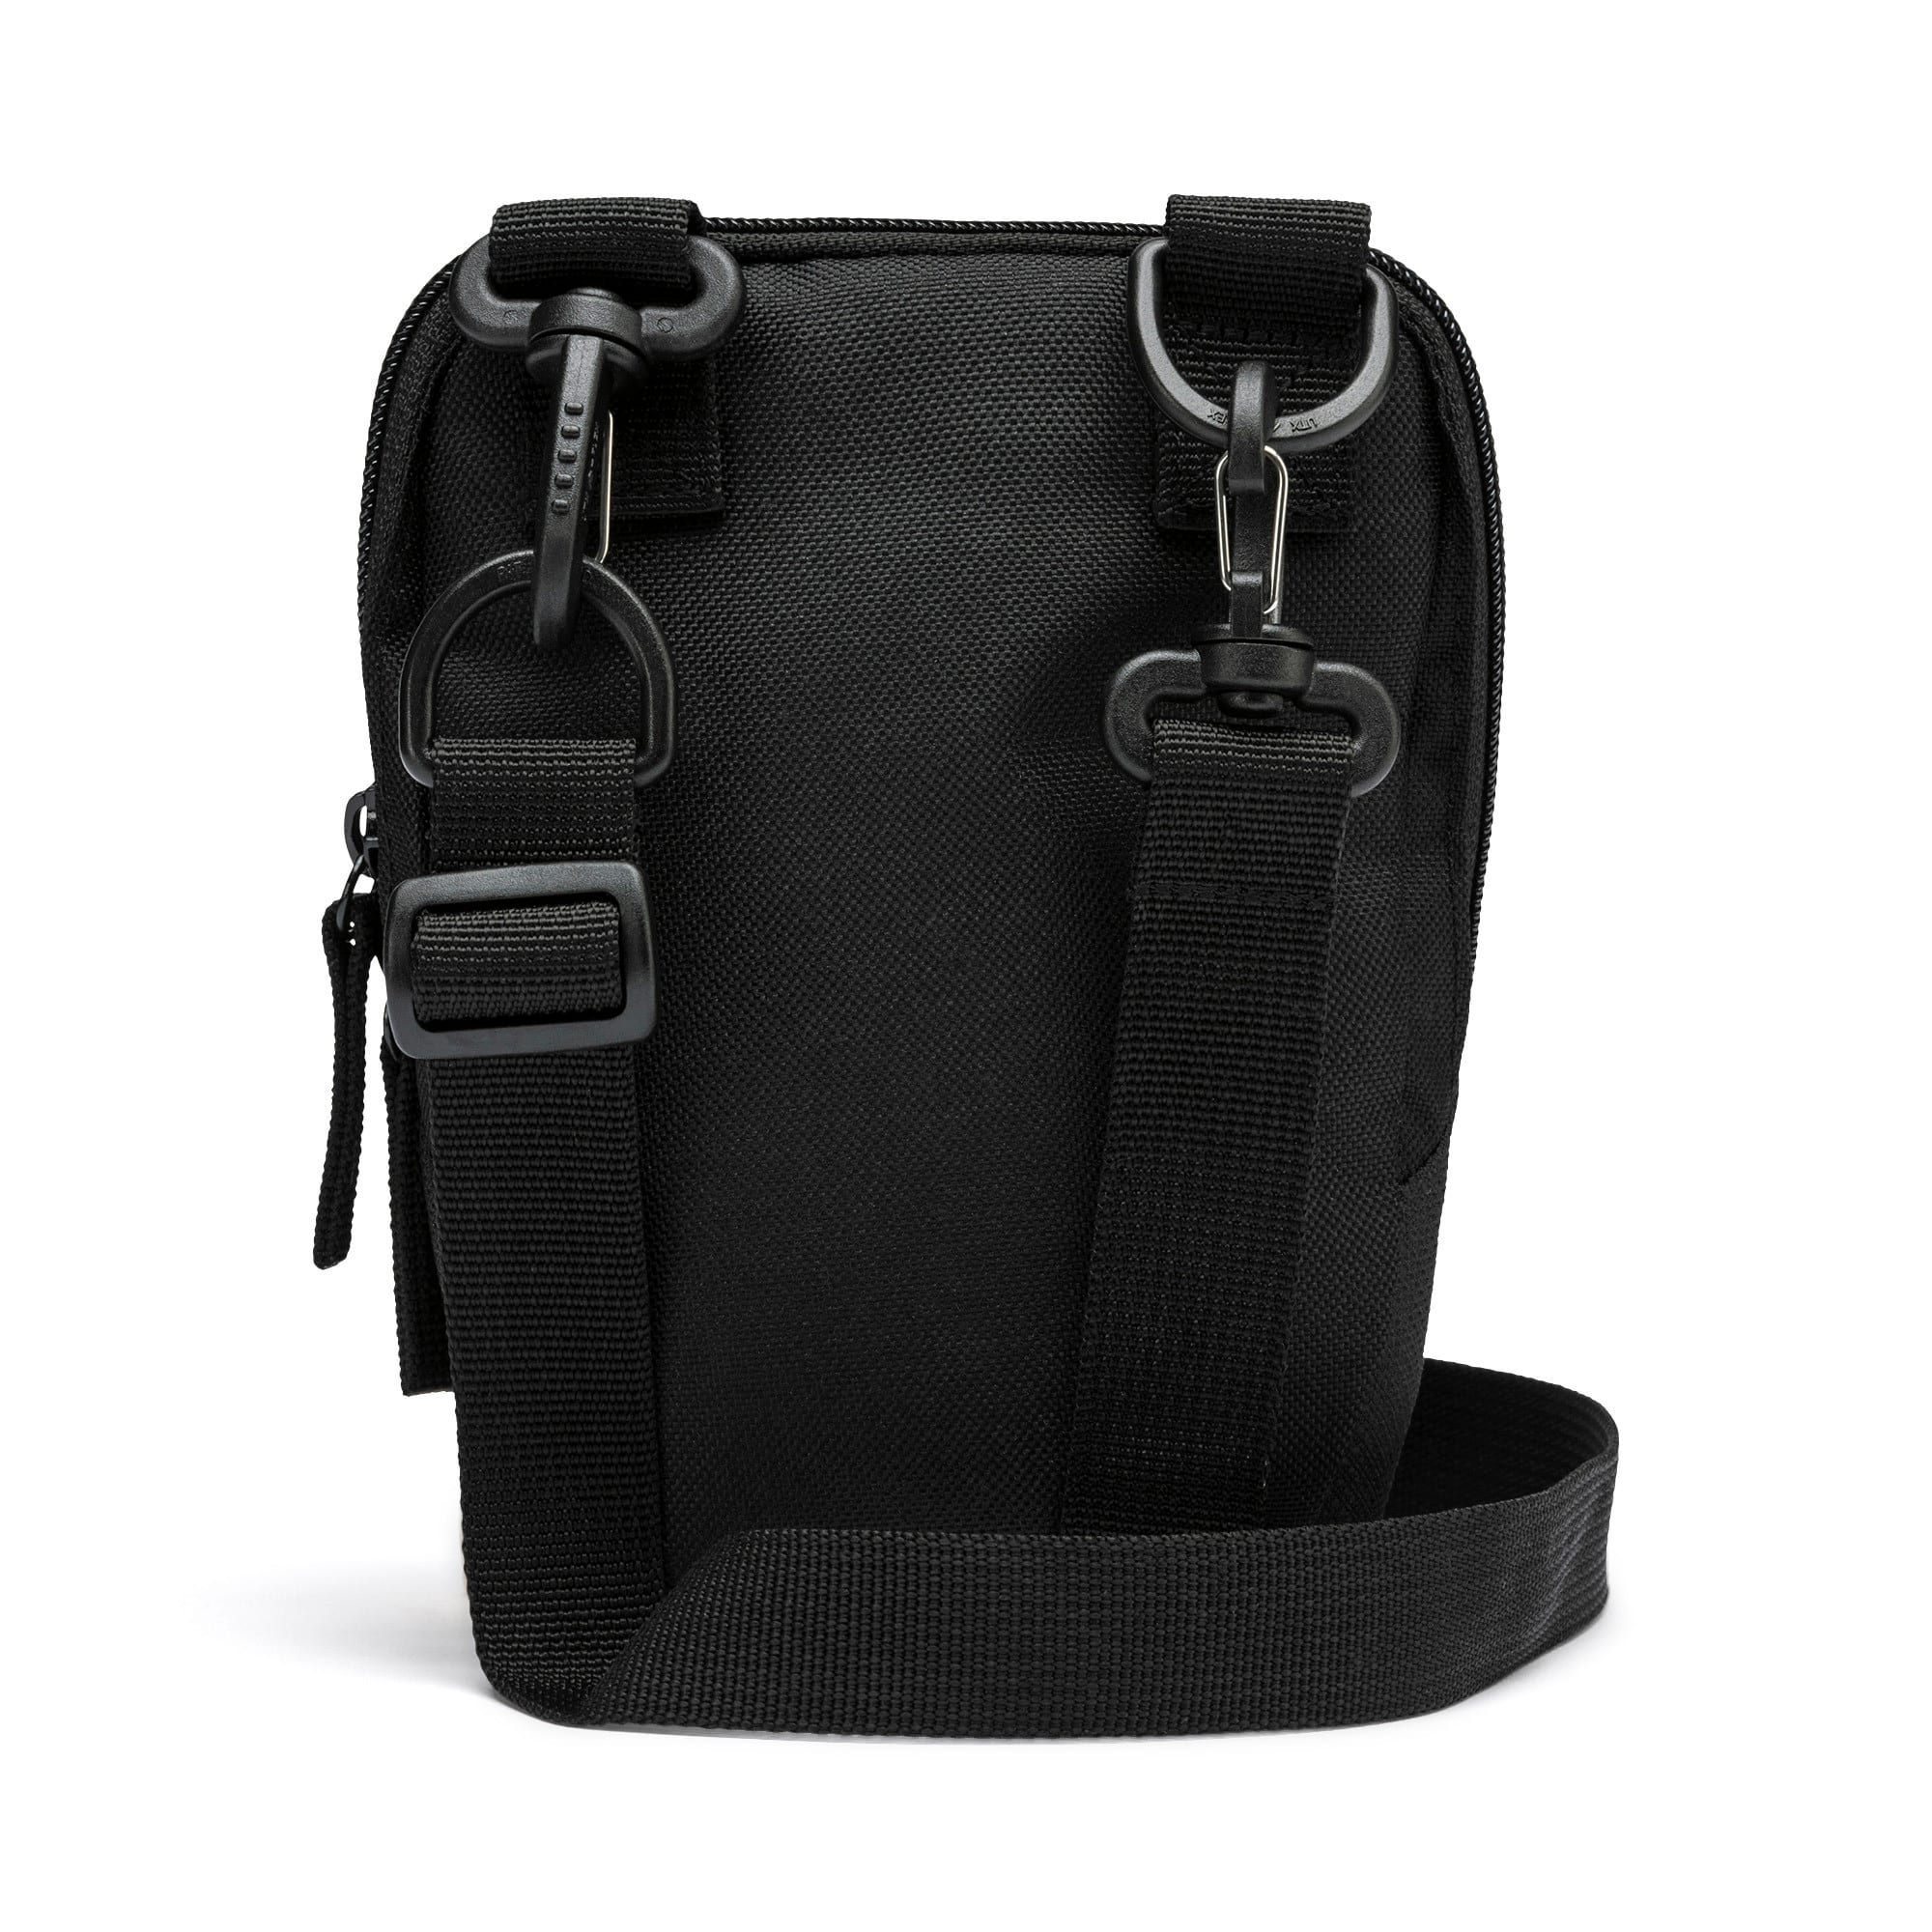 Thumbnail 2 of X Mini Portable Bag, Puma Black, medium-IND